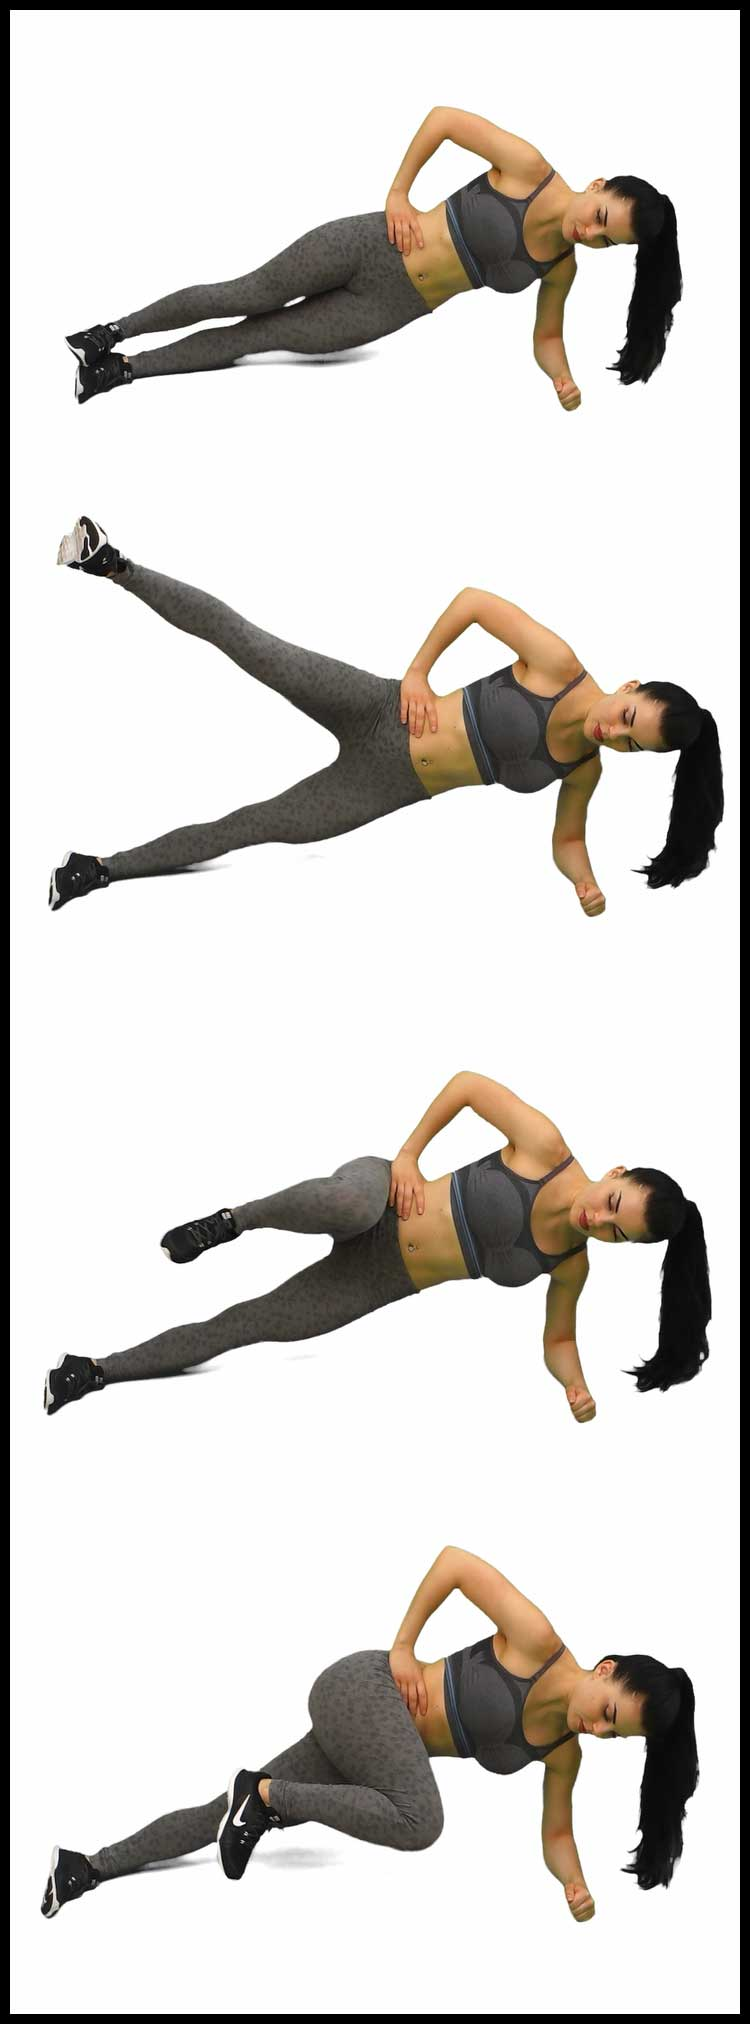 SIDE PLANK DOUBLE TWISTS